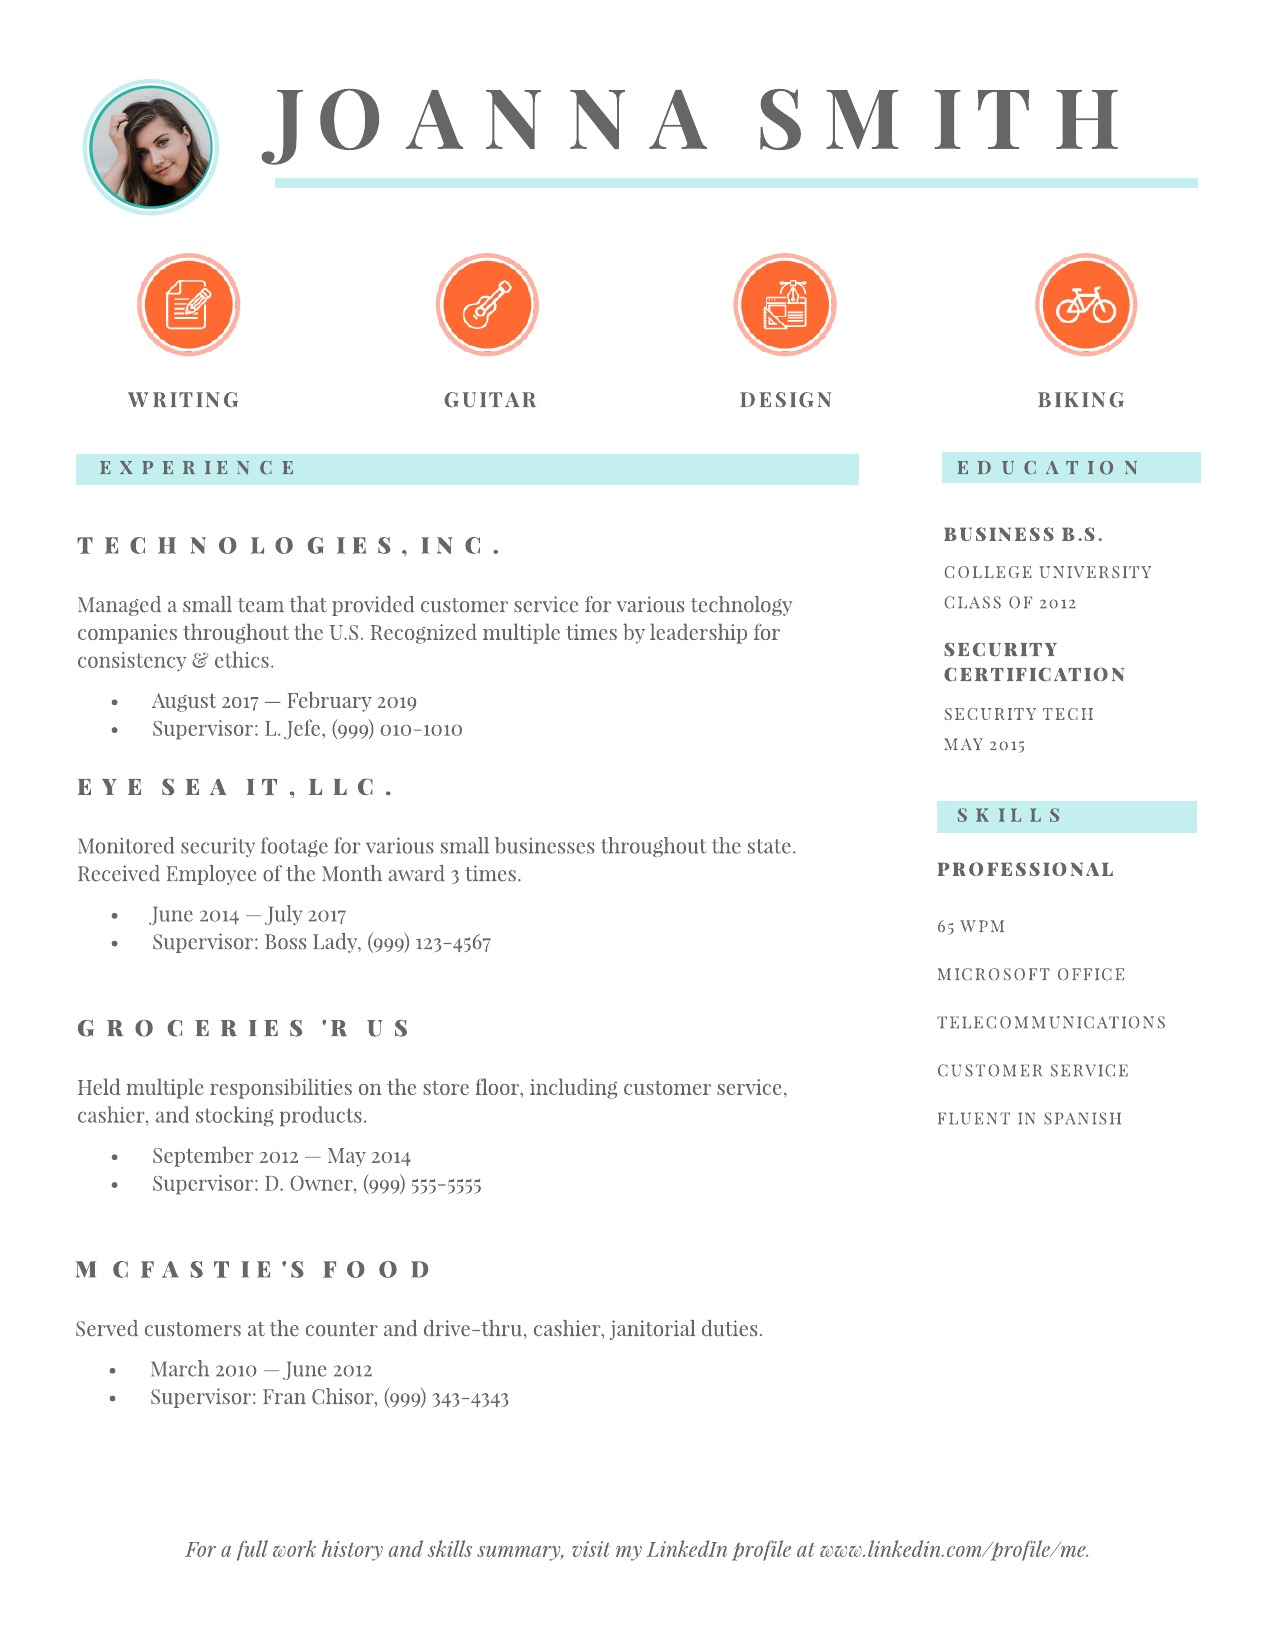 to make resume employers notice lucidpress best layout example good experience with Resume Best Resume Layout 2019